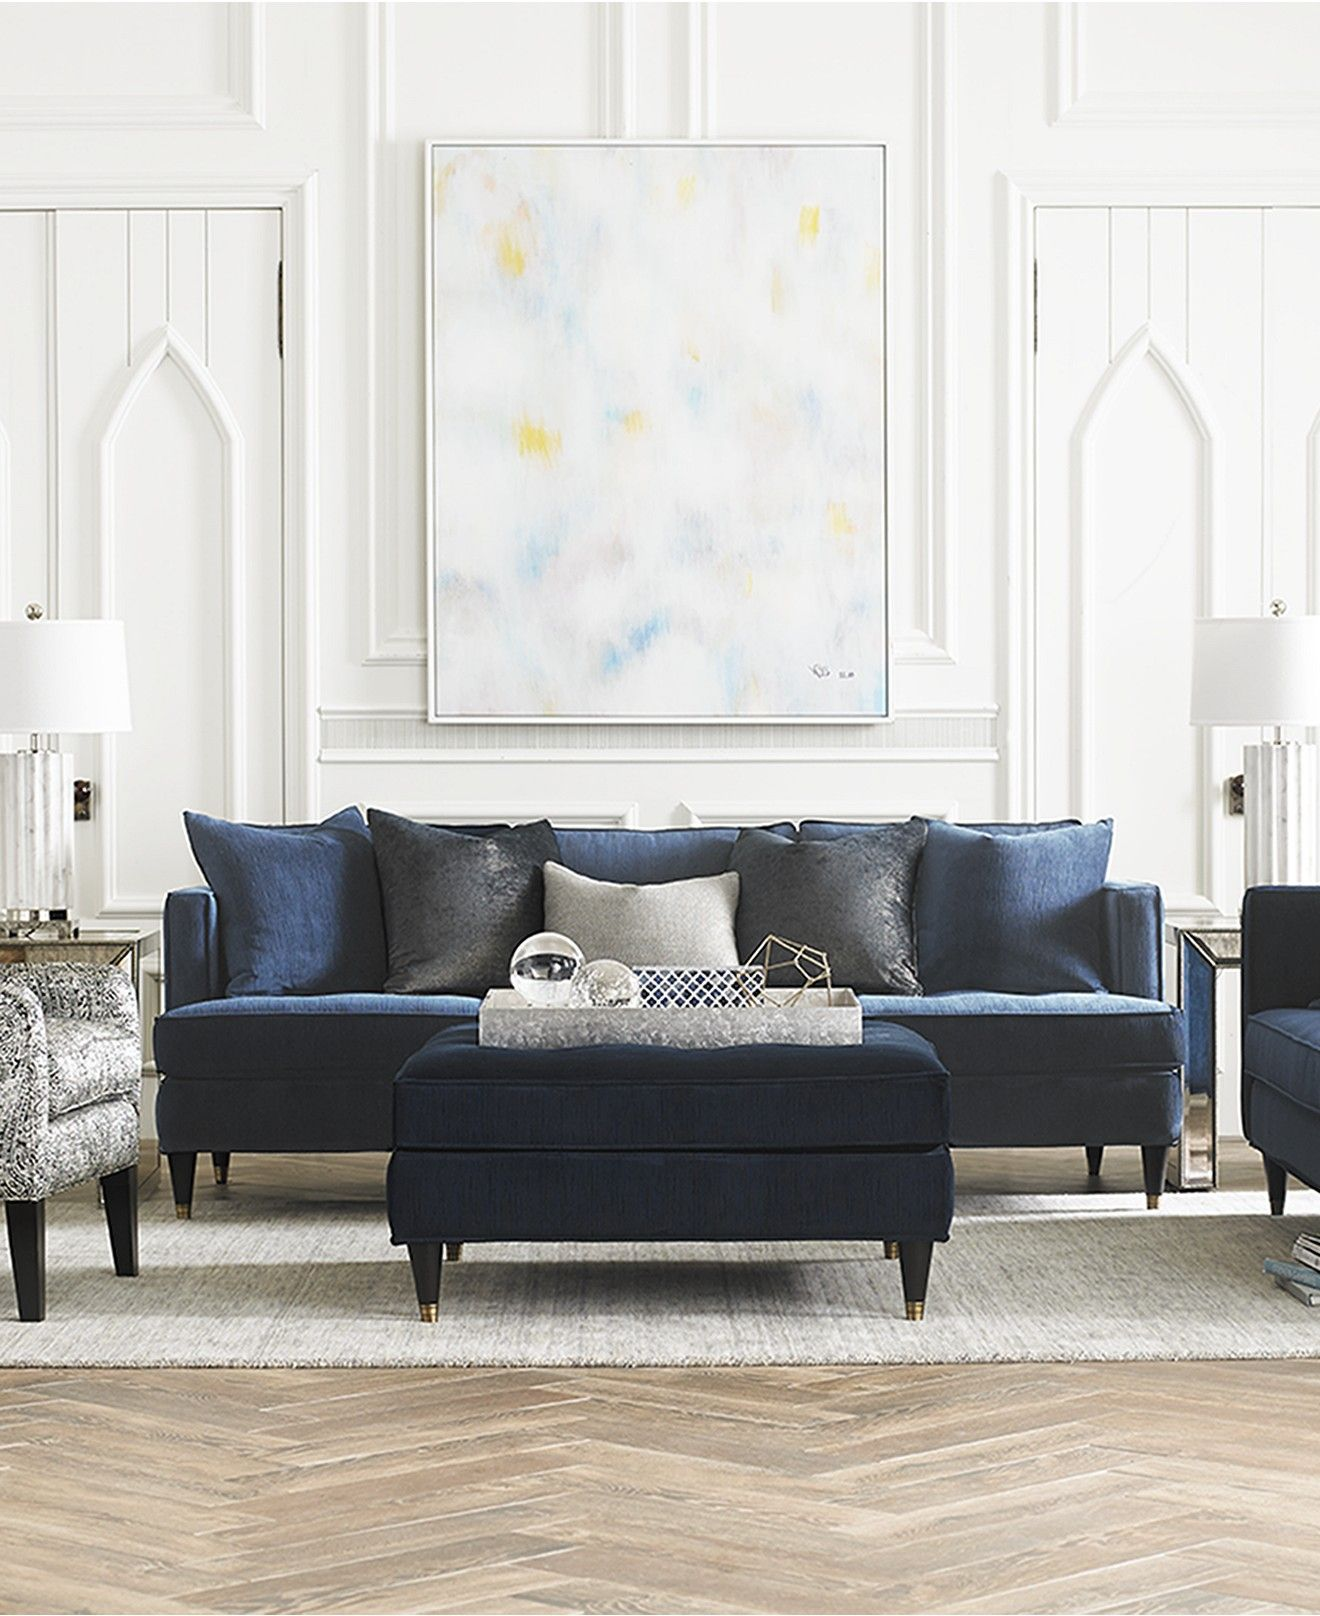 glam sofa set good quality cushions suzette collection furniture macy s ideas for the